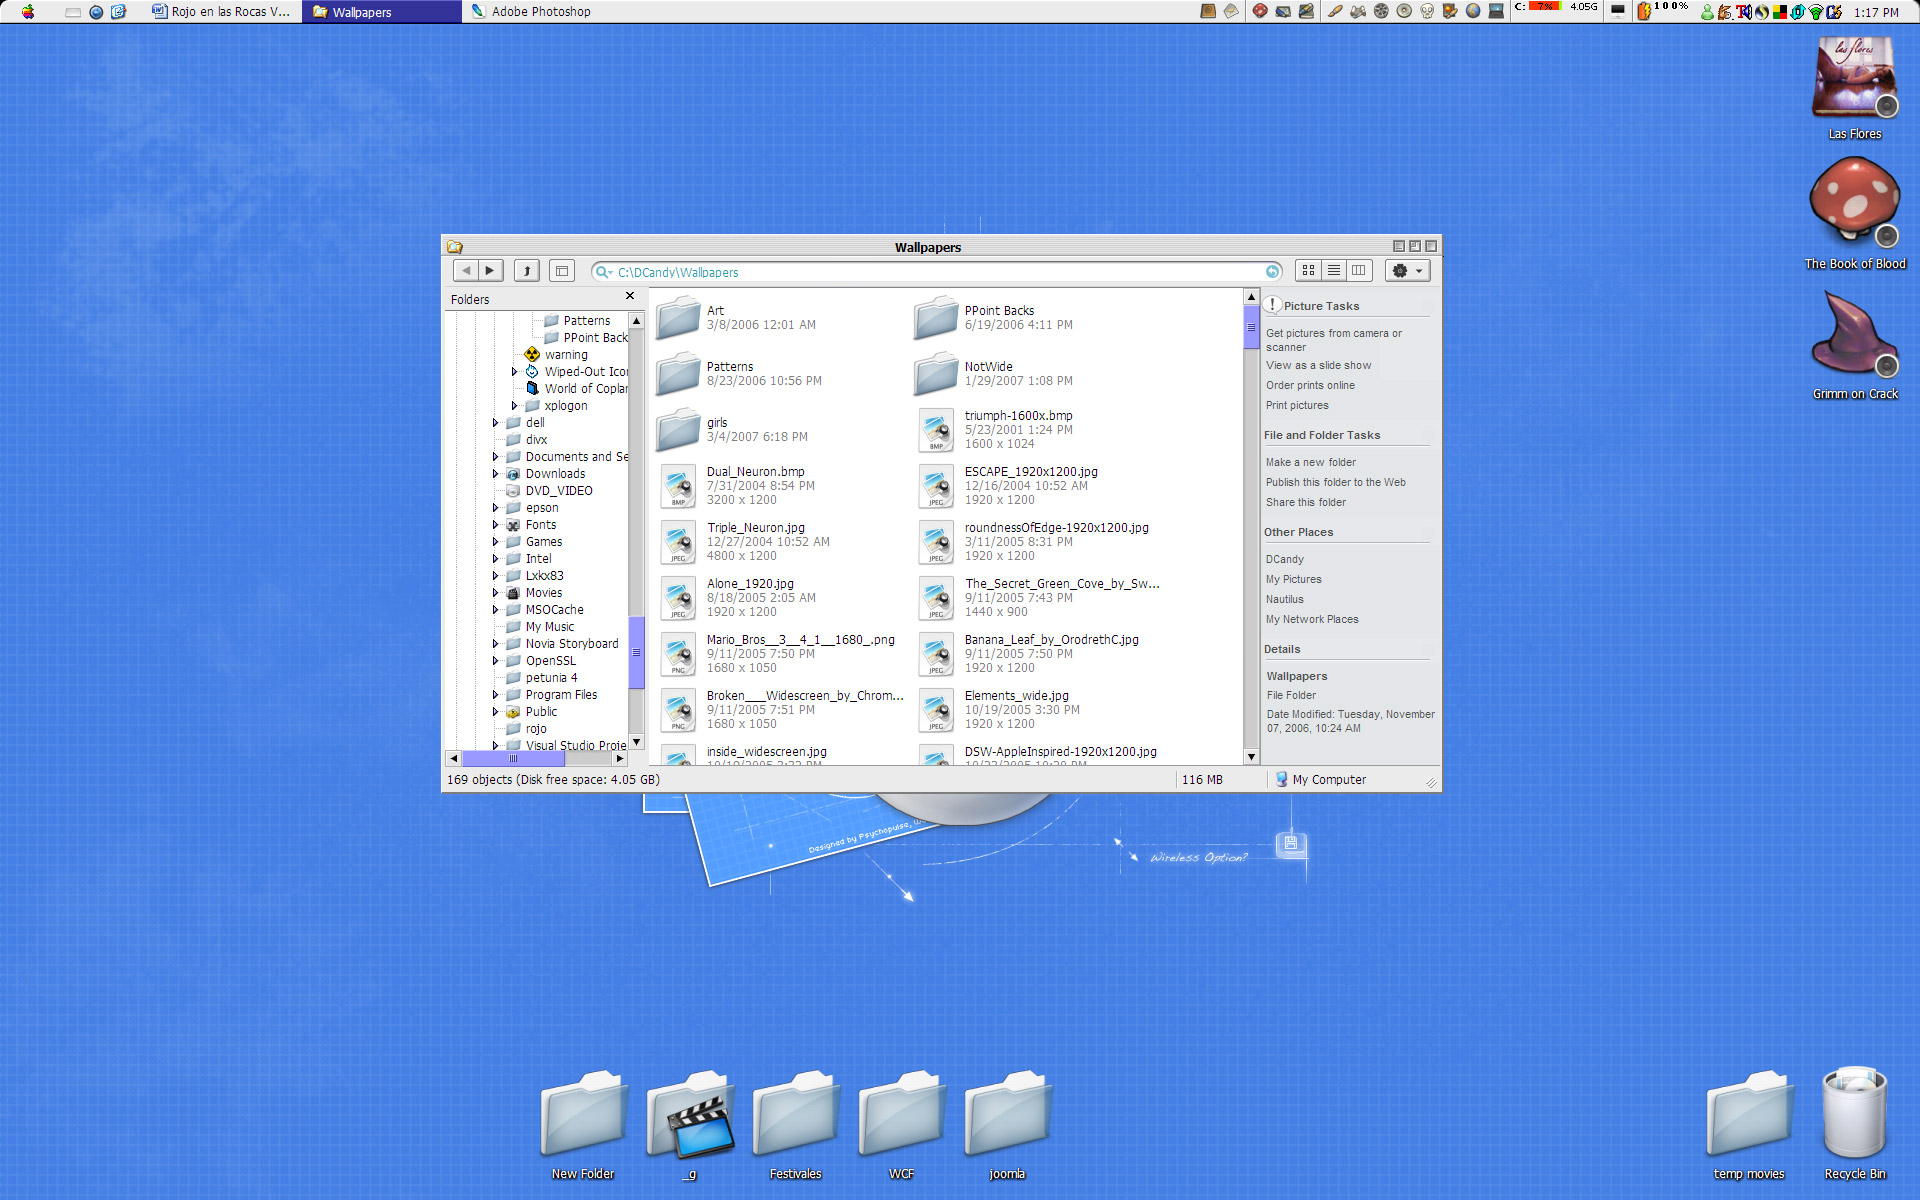 Classic Mac Os 9 by jrp on 1920x1200